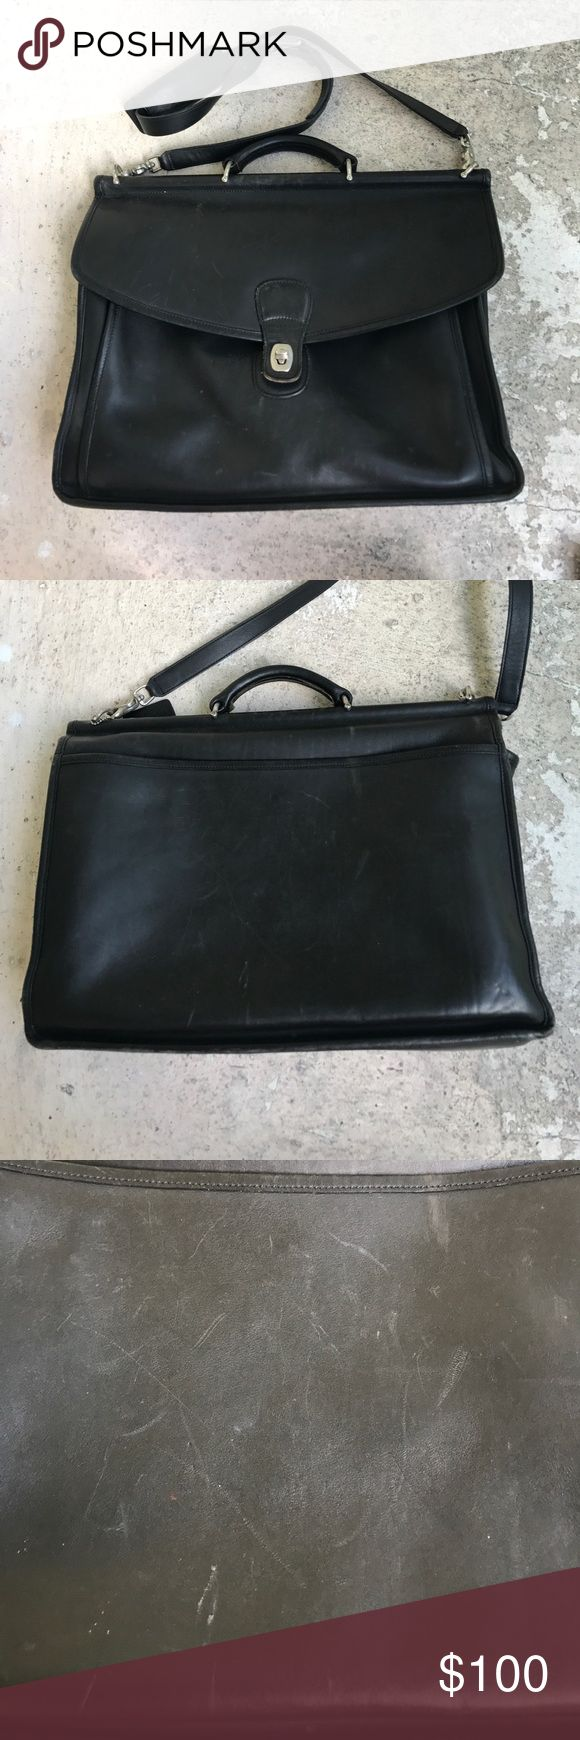 Coach Briefcase This coach is in very good condition but it has some slight wear that will polish out otherwise it is very clean and good all around Coach Bags Briefcases